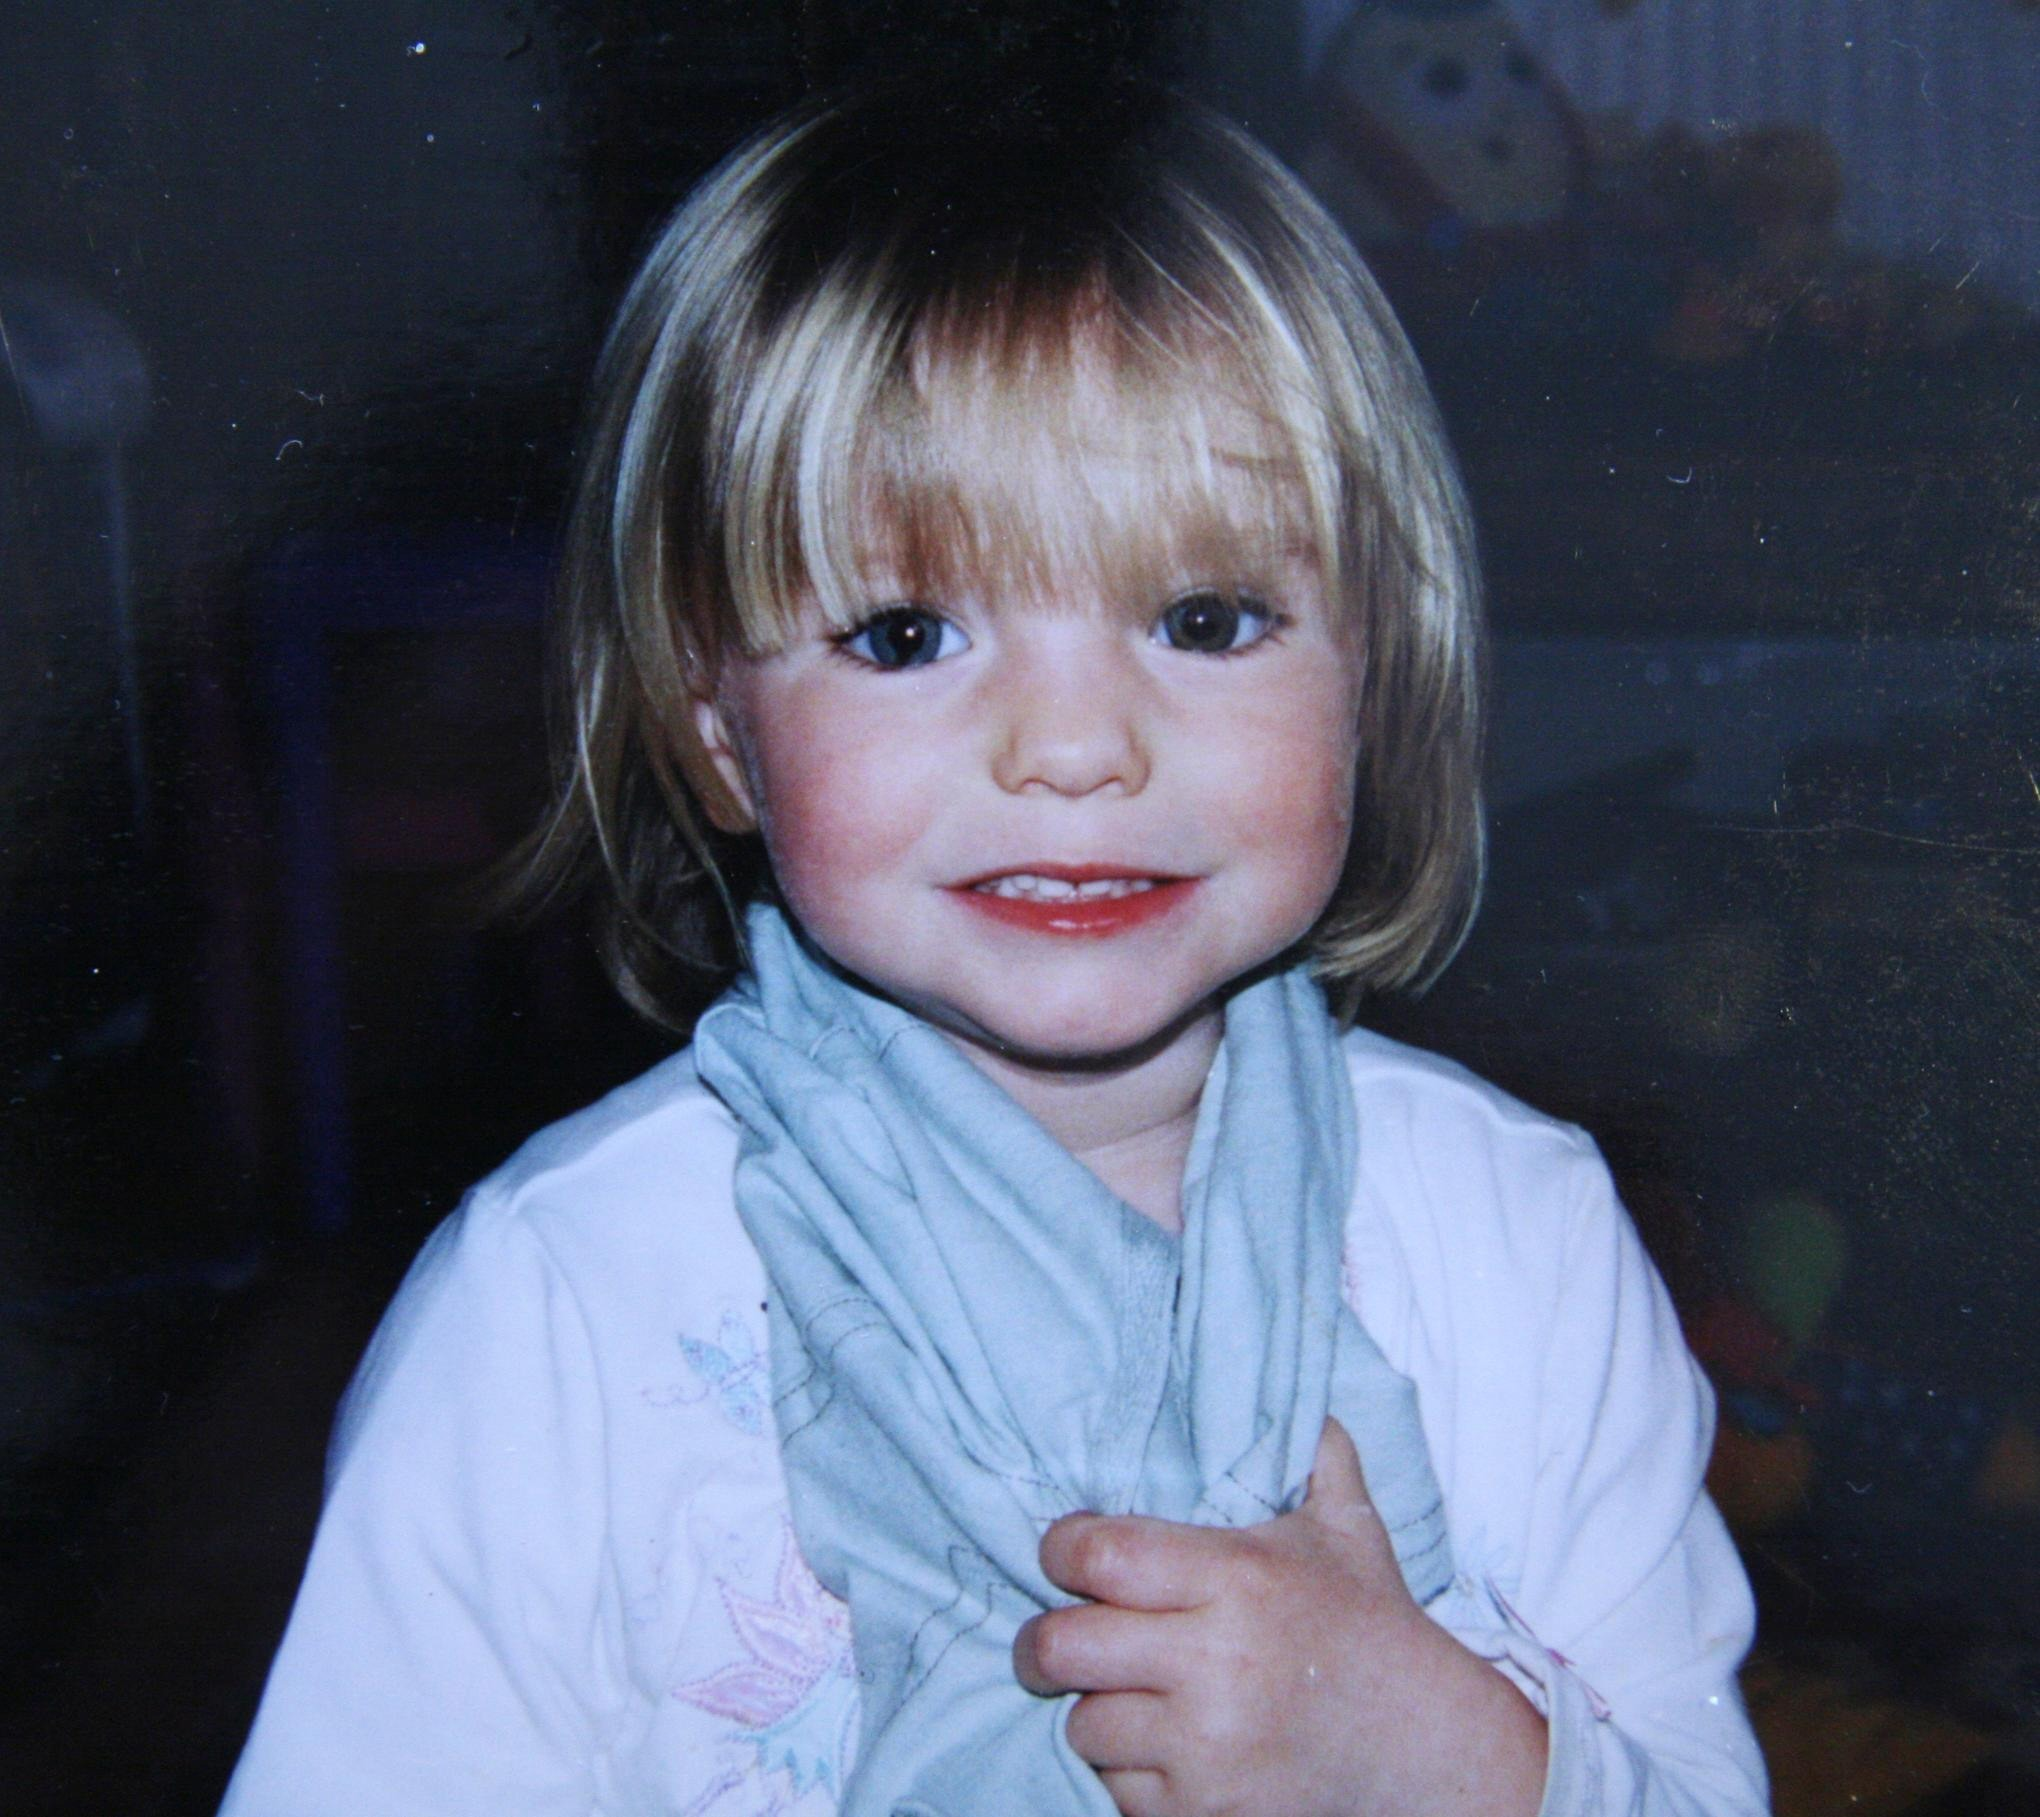 In this handout photo, relased September 16, 2007 missing child Madeleine McCann smiles. The McCann family have returned from Portugal after local police questioned them on the disappearance of daughter Madeleine, who vanished from their hoiliday apartment in Praia da Luz, Portugal, on May 3, 2007. Portugal's public prosecutor is reviewing police papers detailing the Madeleine McCann inquiry.